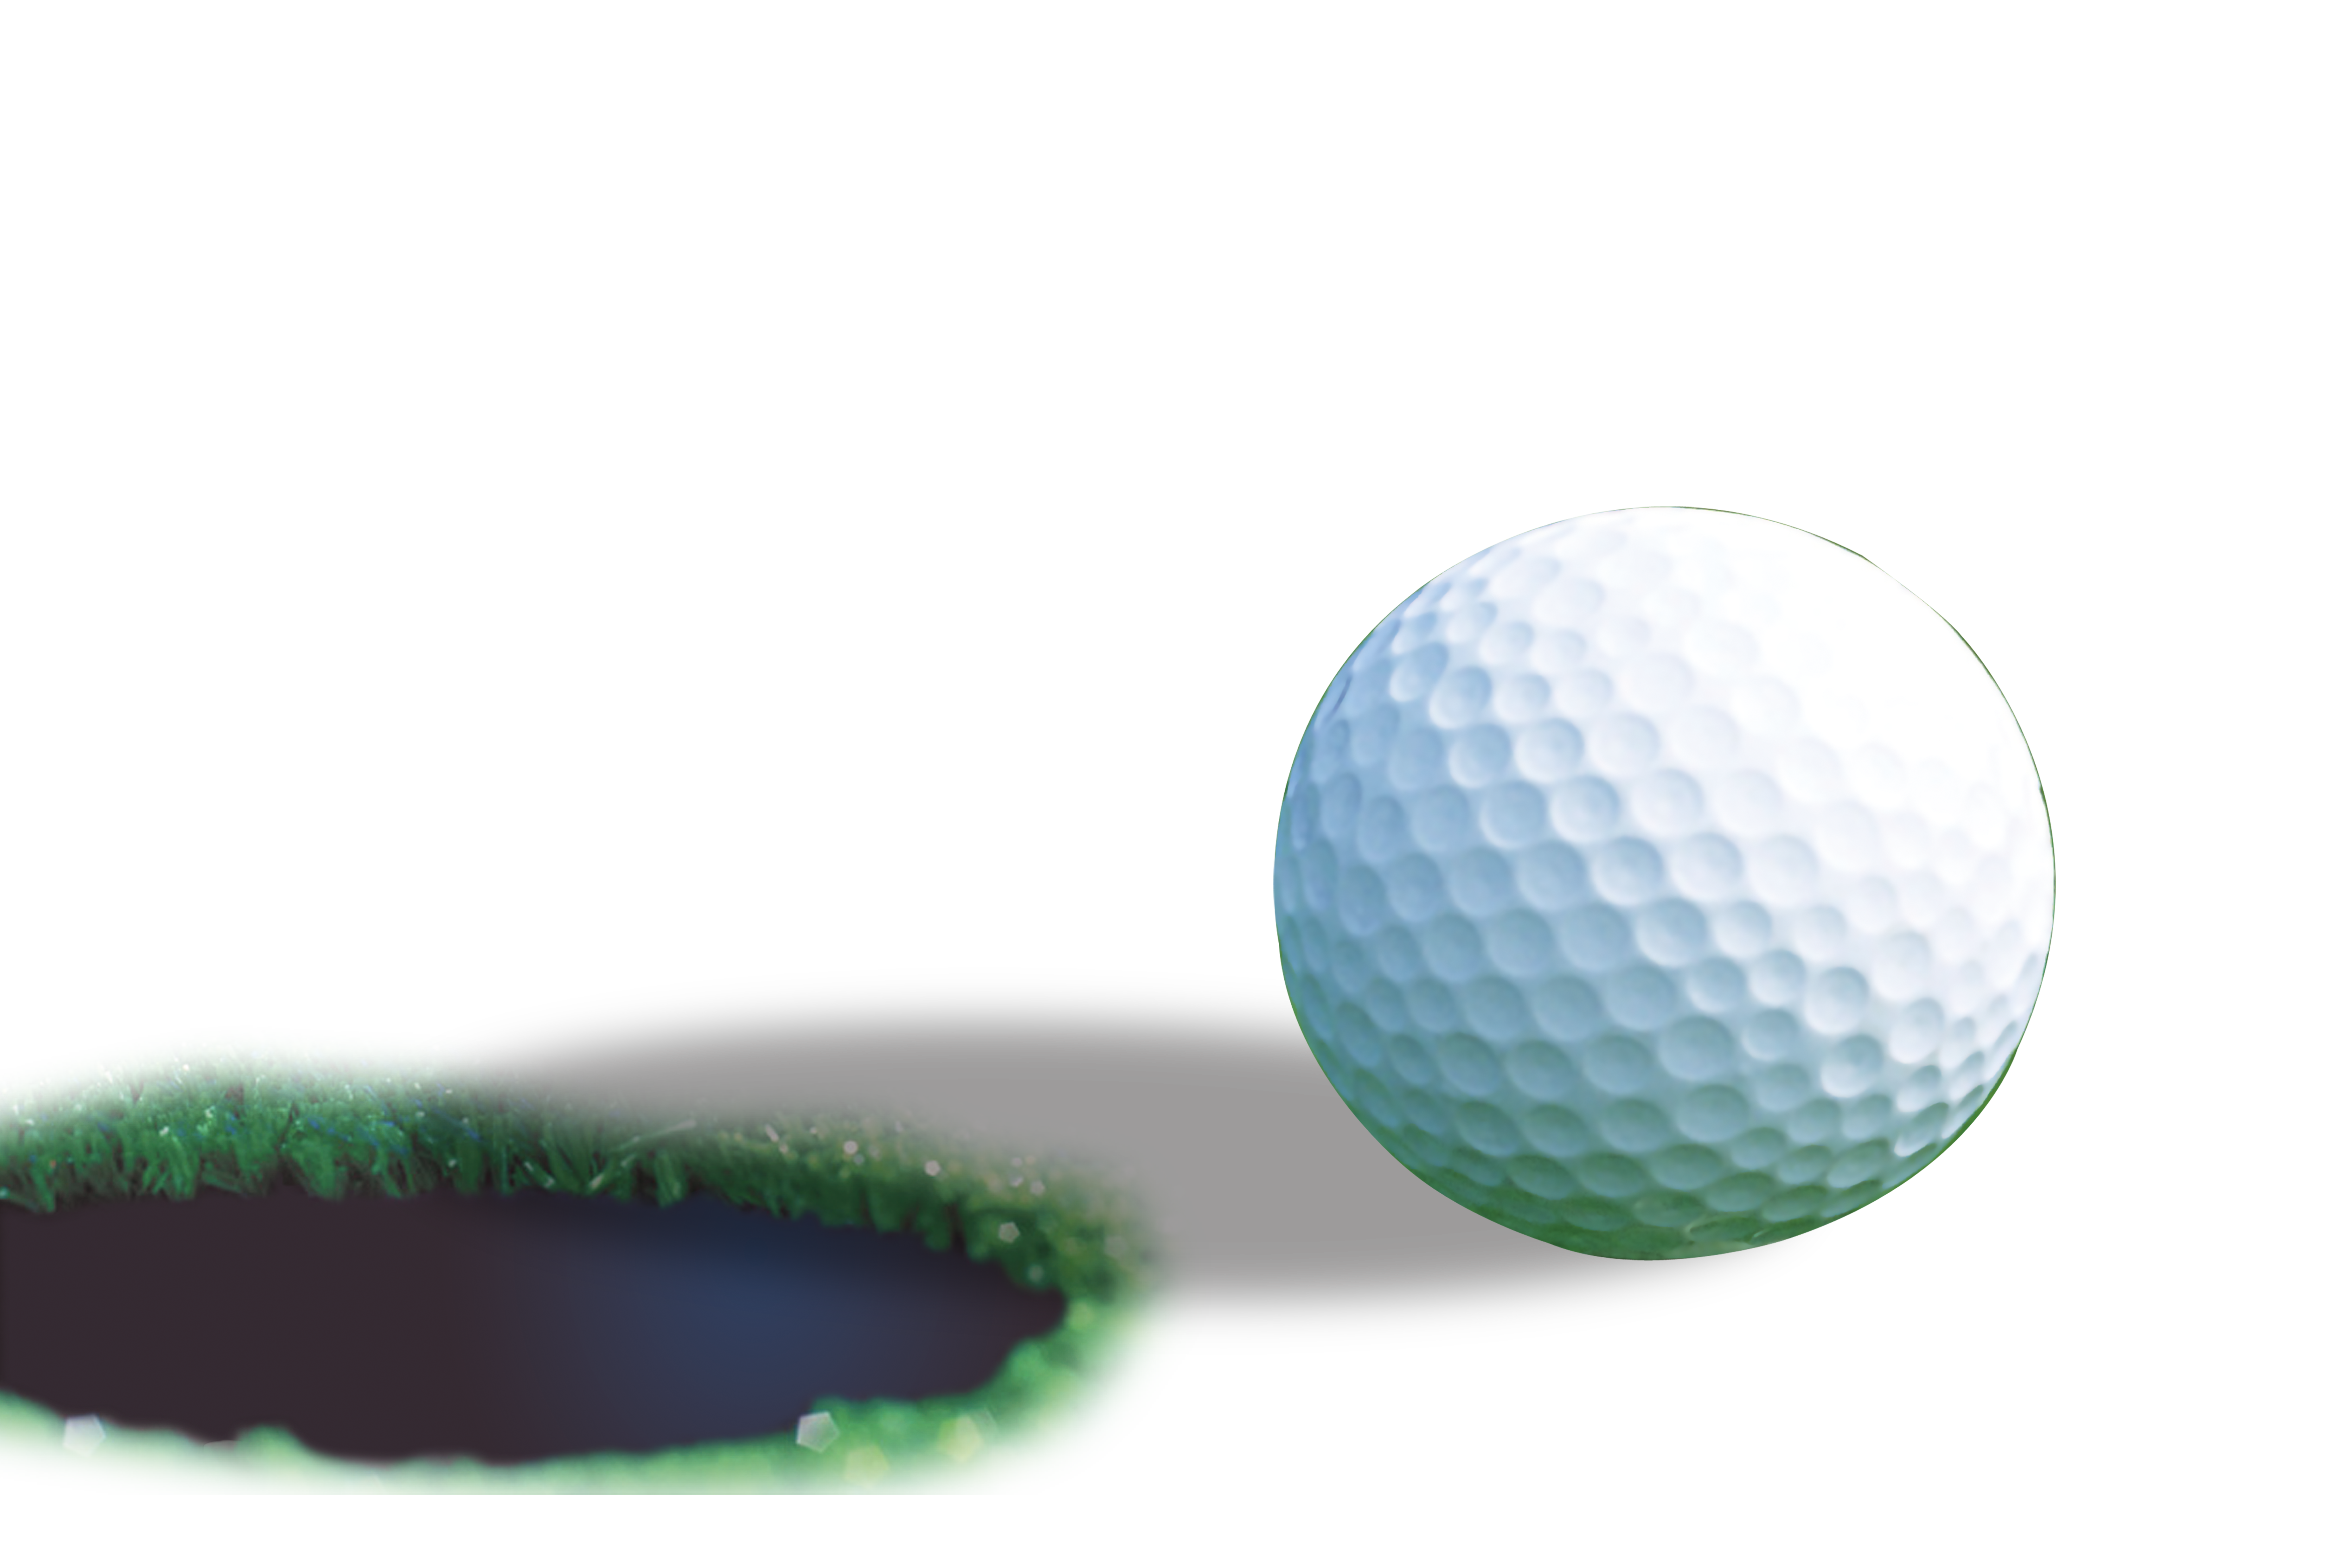 Png golf. Ball transprent free download